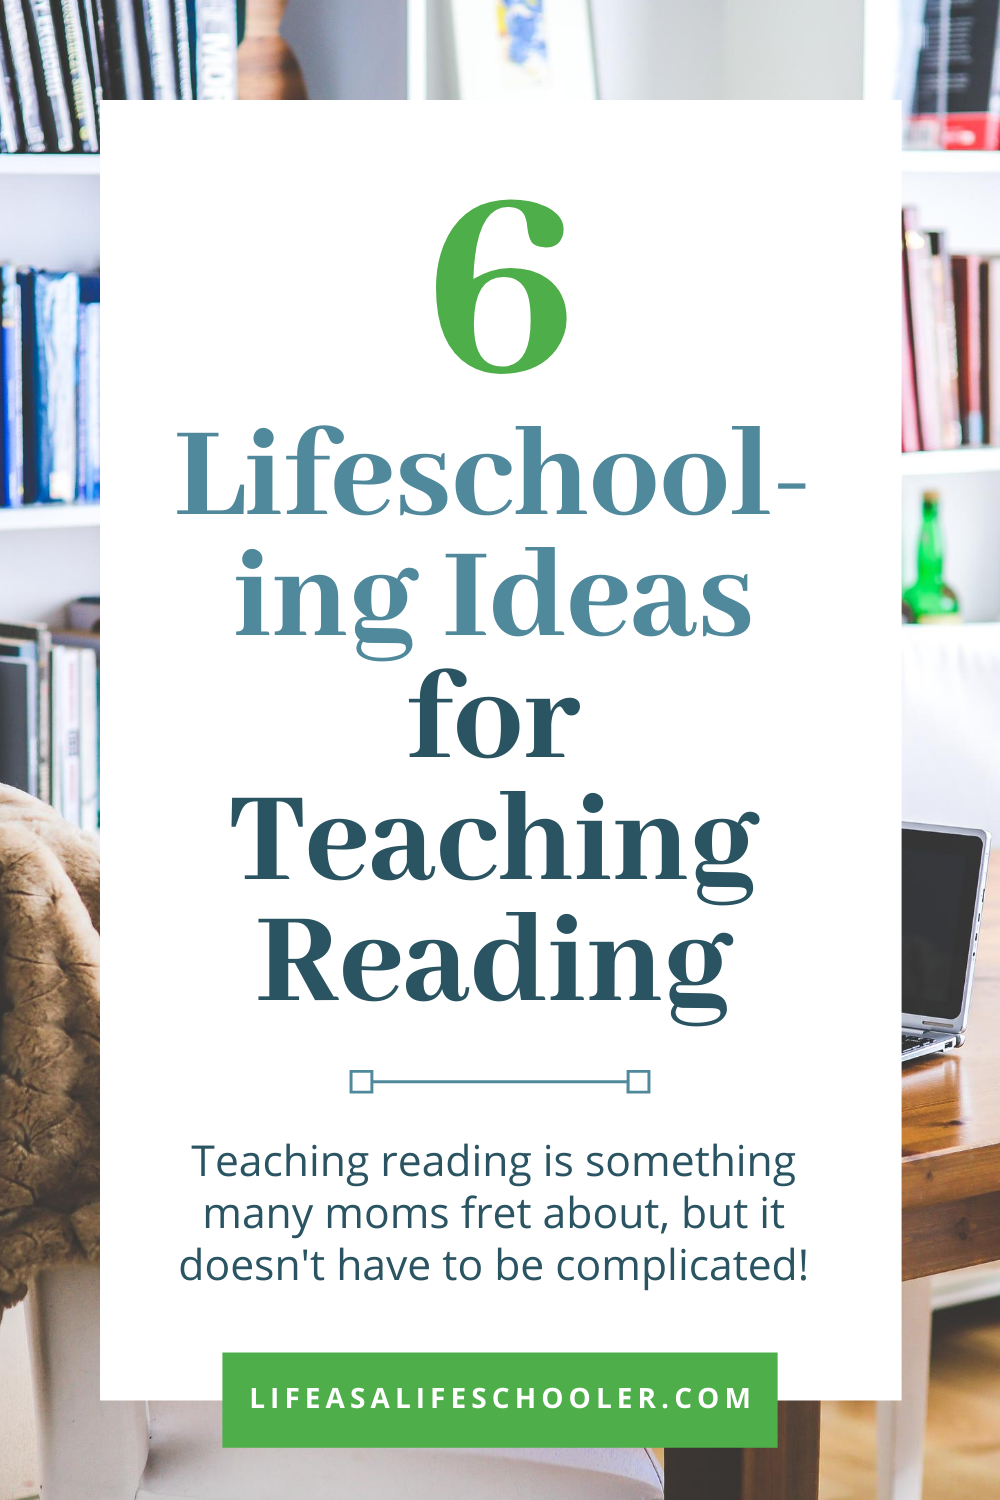 6 Lifeschooling Ideas for Teaching Reading